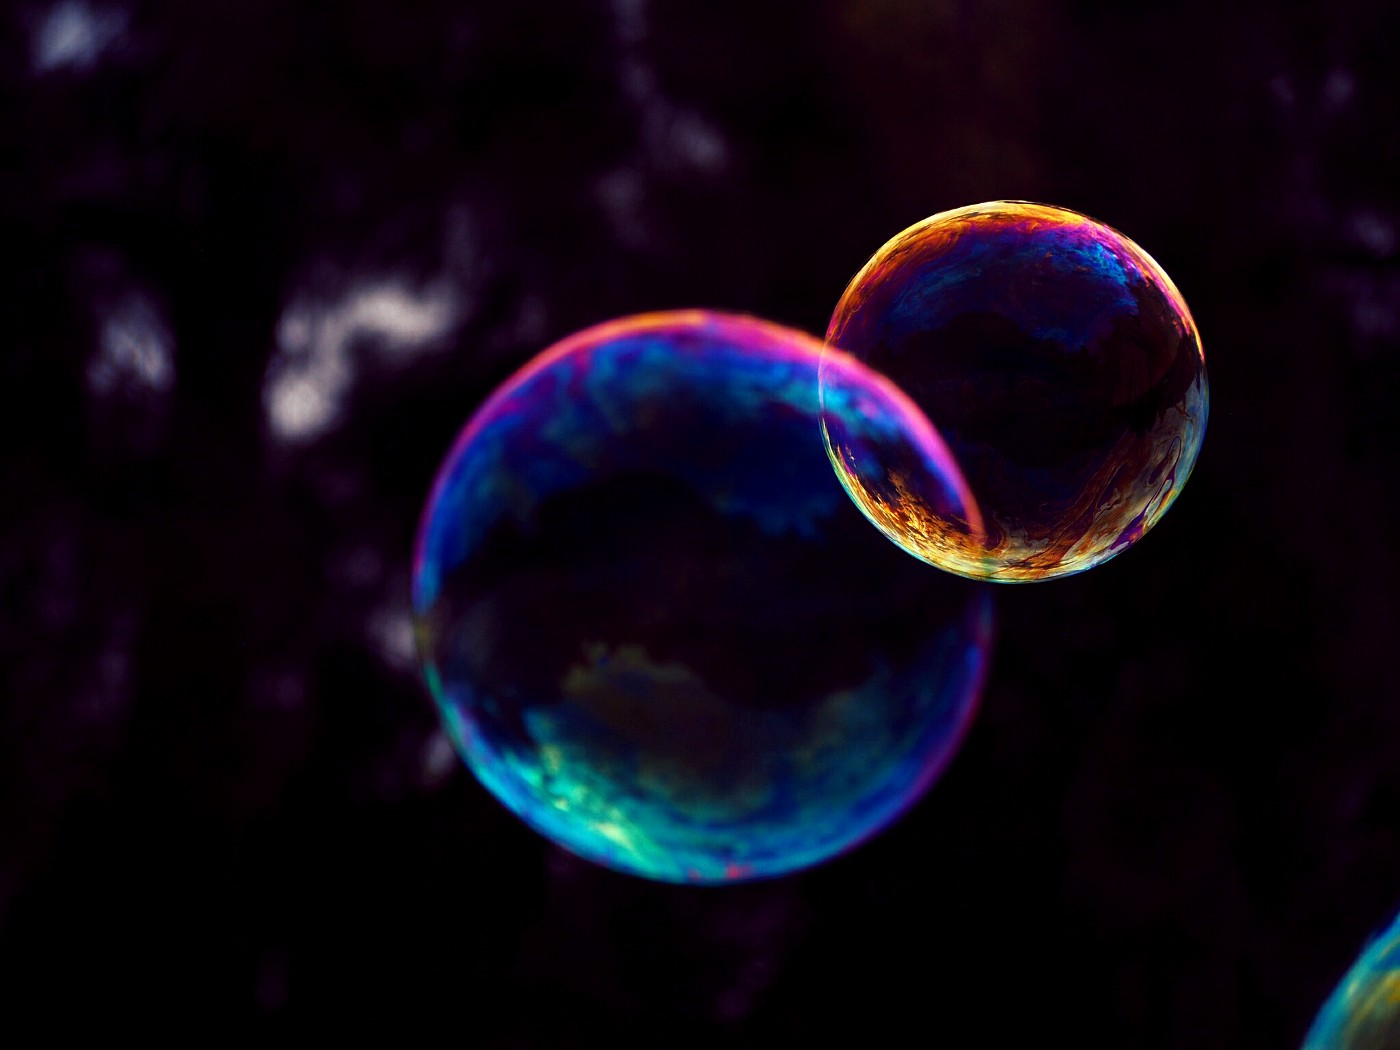 Two interconnected bubbles